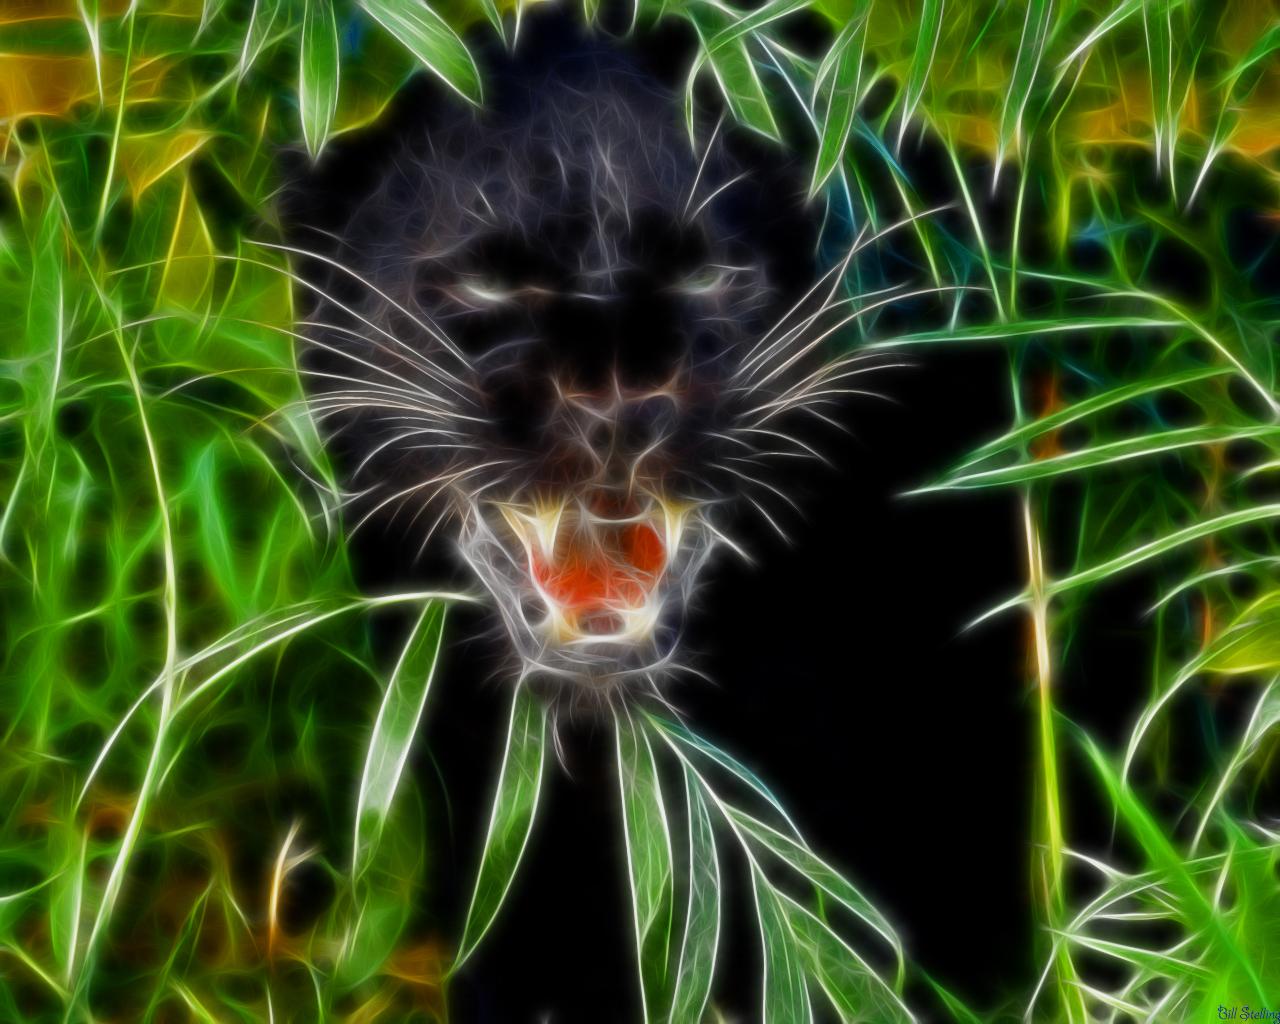 Black Panther on the Hunt by billstelling on DeviantArt